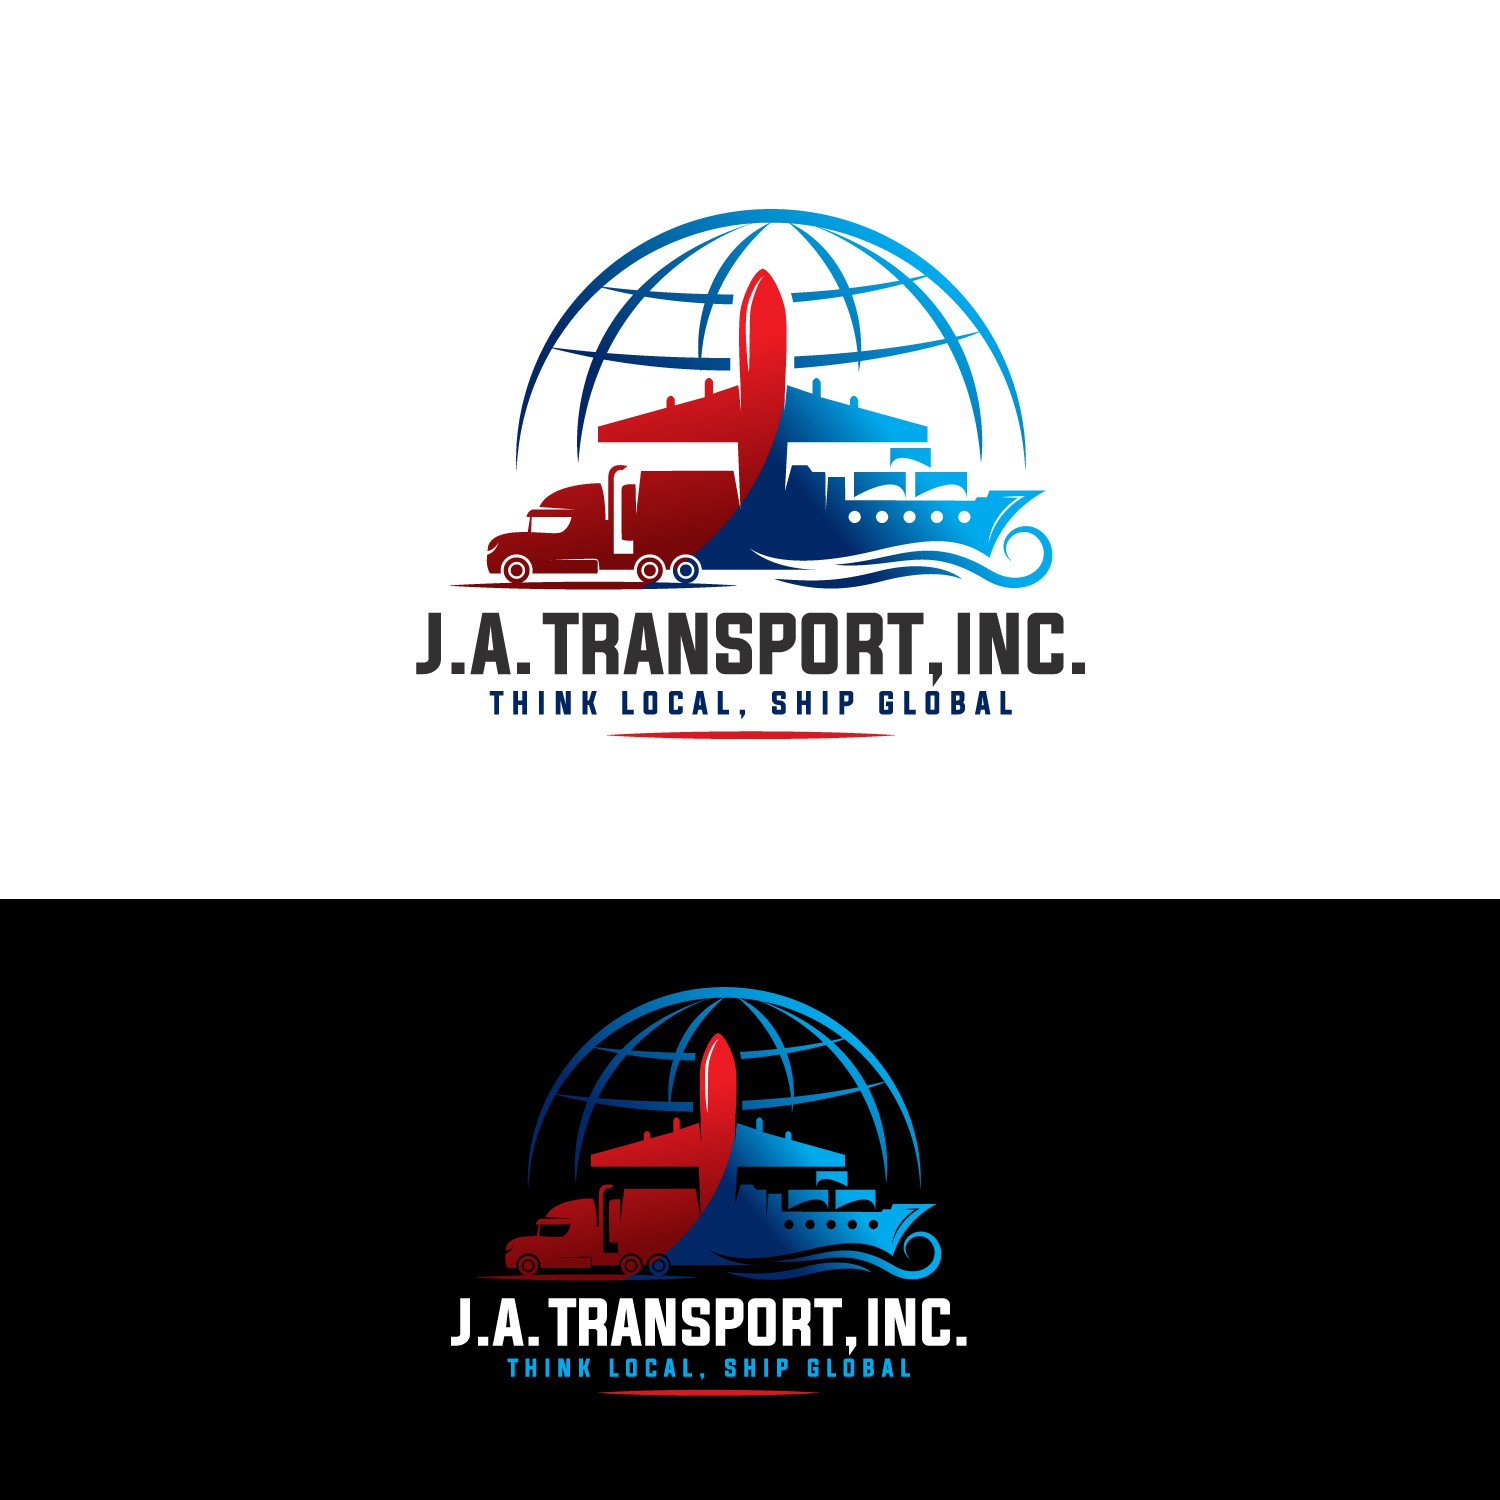 J.A. Transport Shipping company